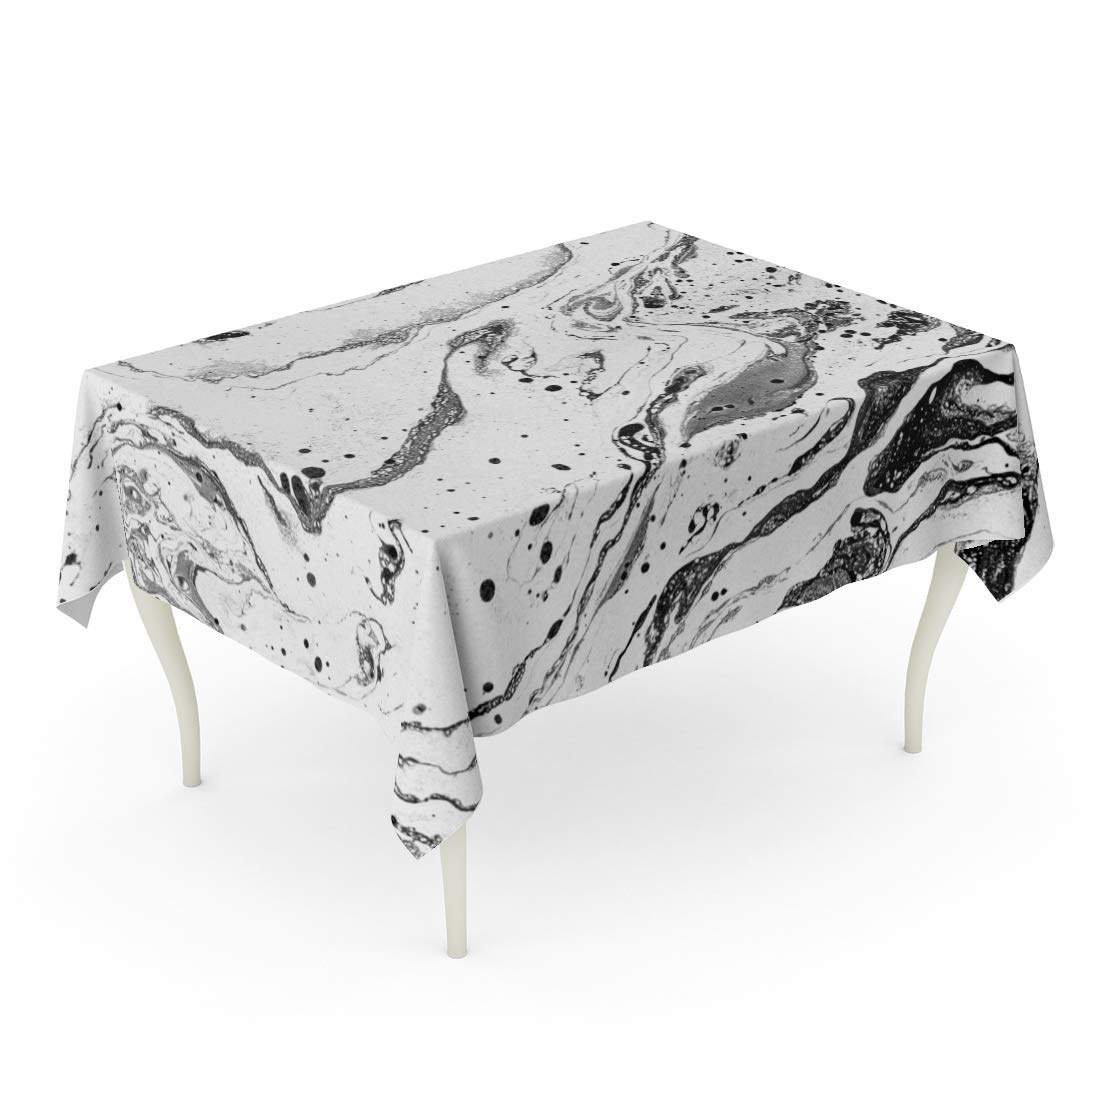 Semtomn Decorative Tablecloth Waterproof Printed Polyester Water Resistant Oil-Proof Beautiful Painting Hand for Websites Dynamic Composition Marbled Creative Black Rectangle Table Cloth 60 x 102 Inch